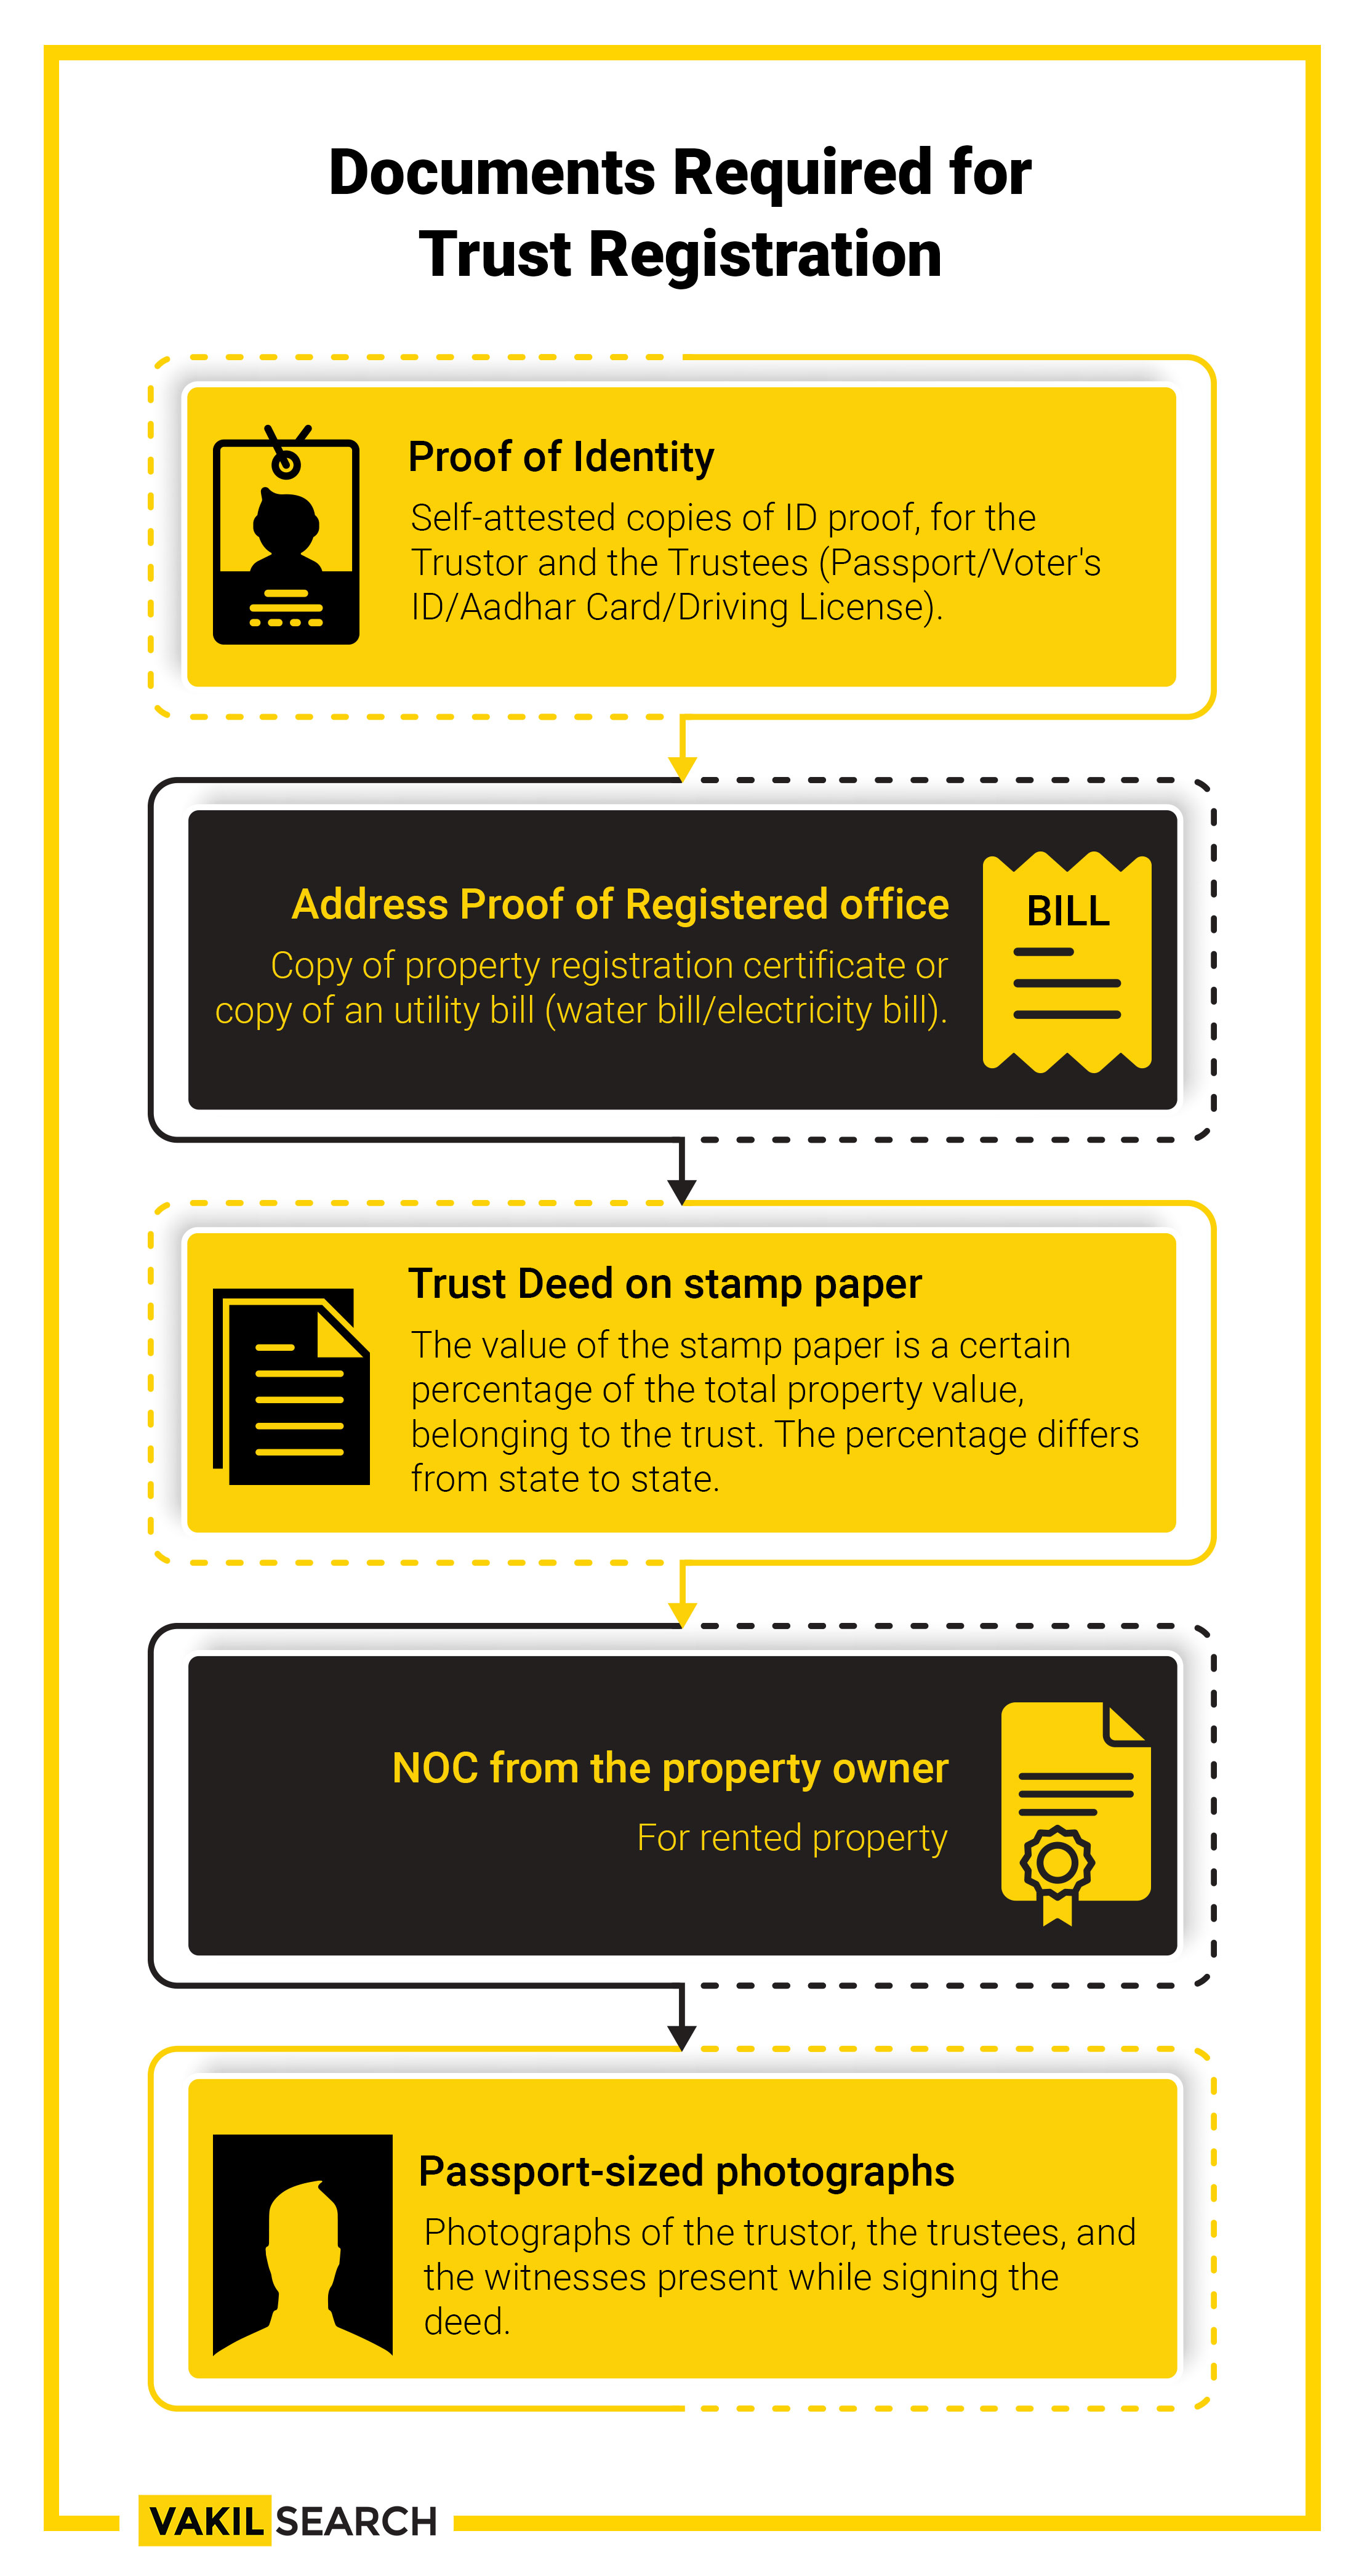 Documents-required-for-Trust-Registration